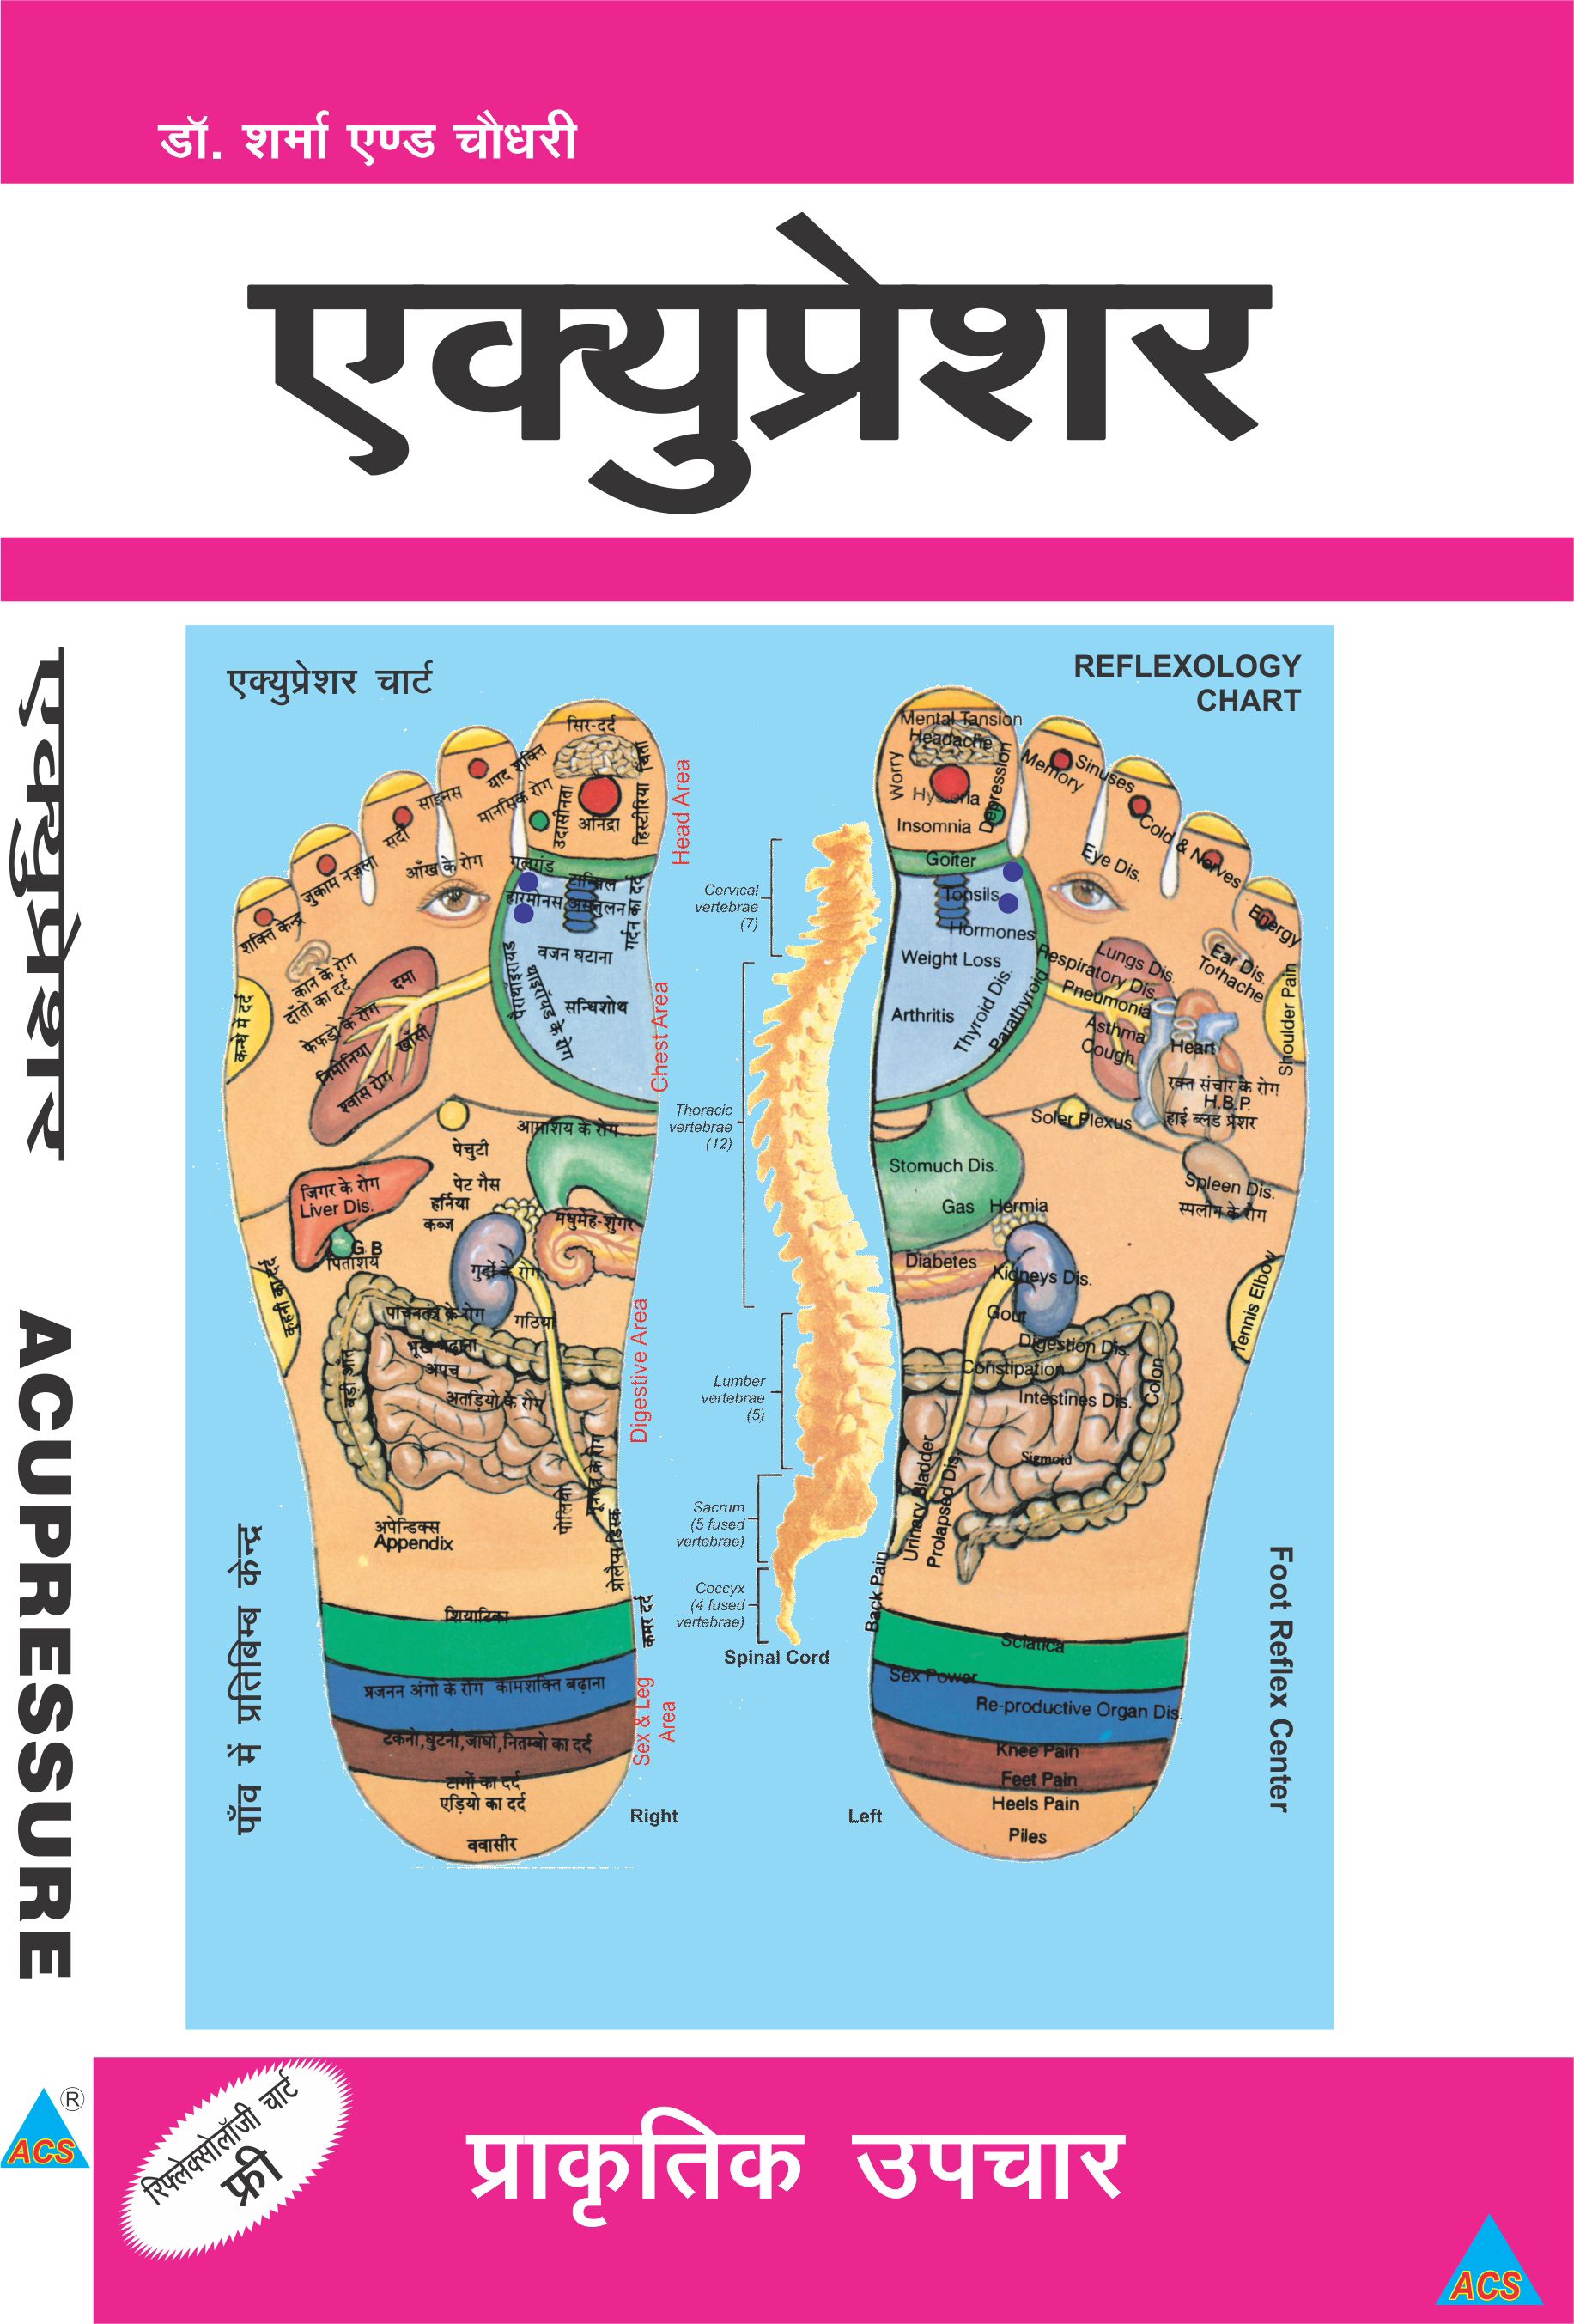 Acupressure - Dr. Sharma & Choudhary - Hindi  - 326